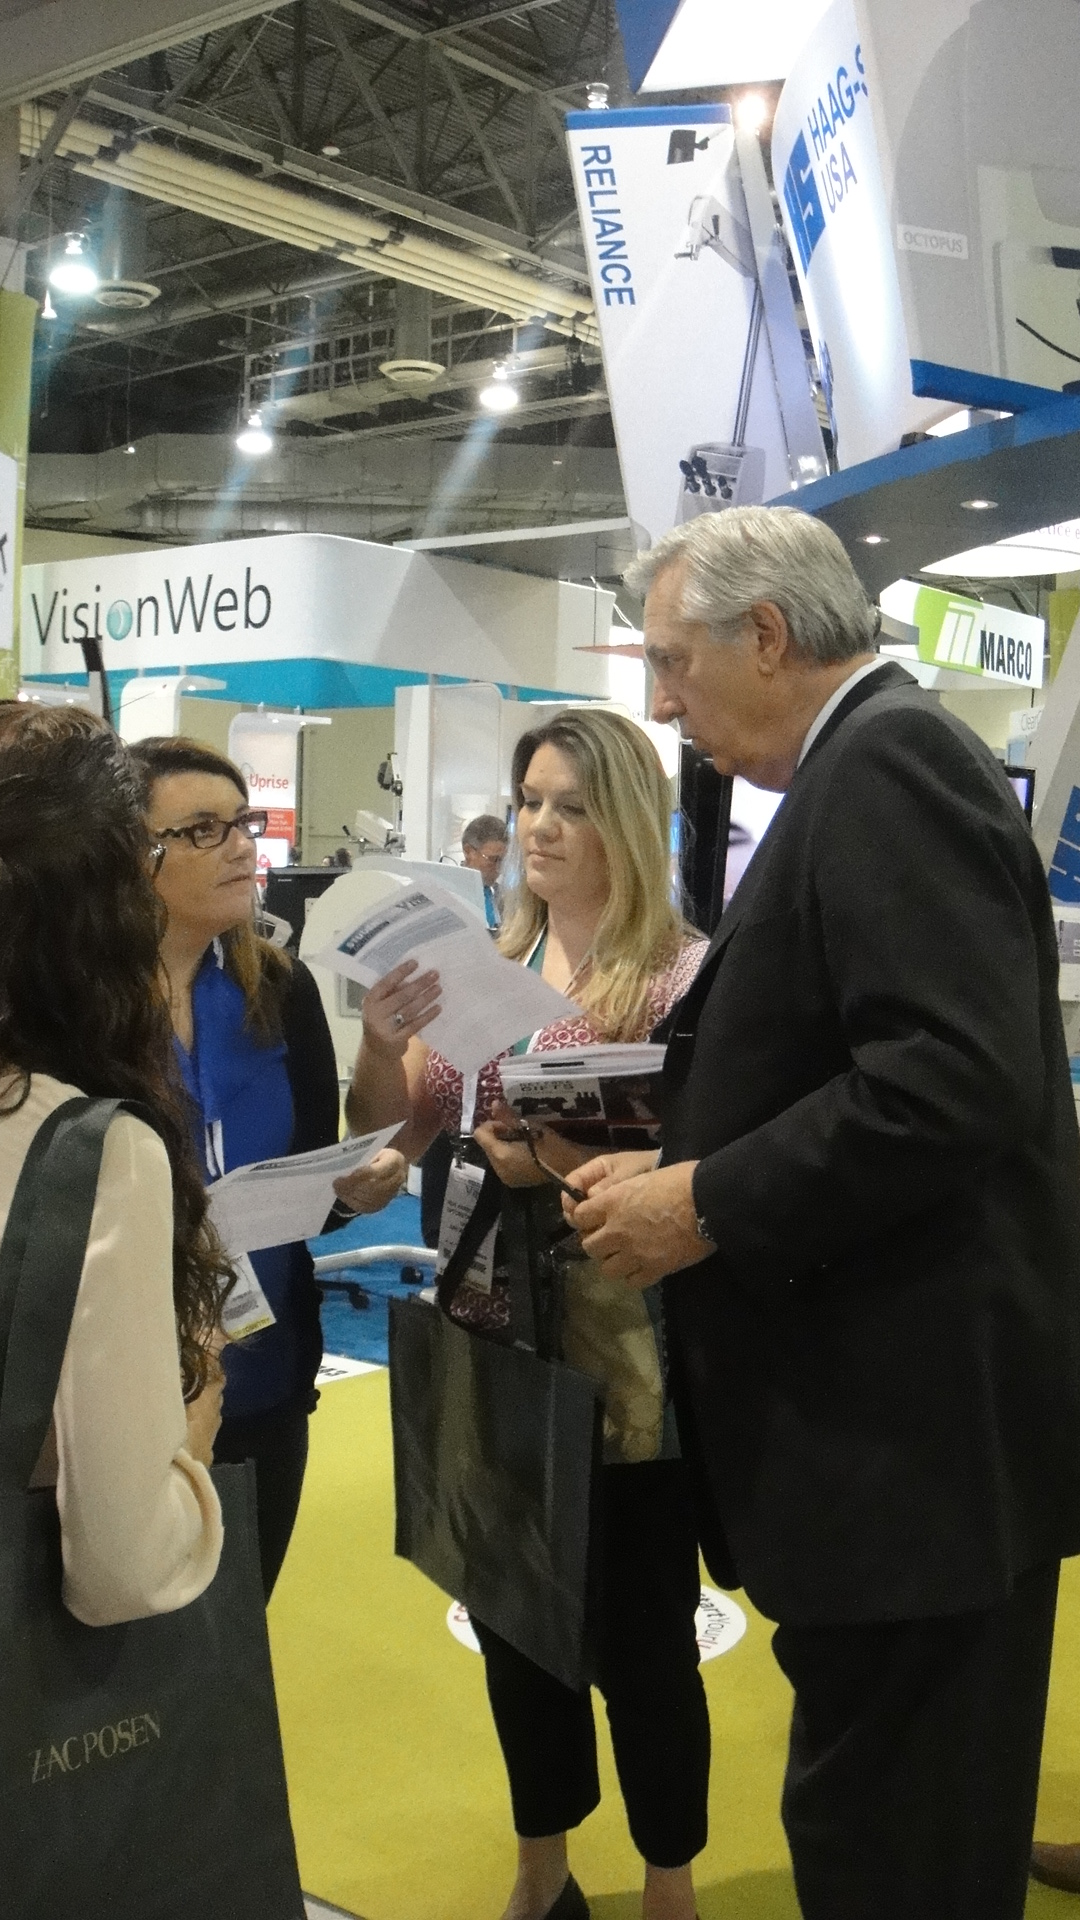 Vision Expo West 2014: new technology, networking, and job offers